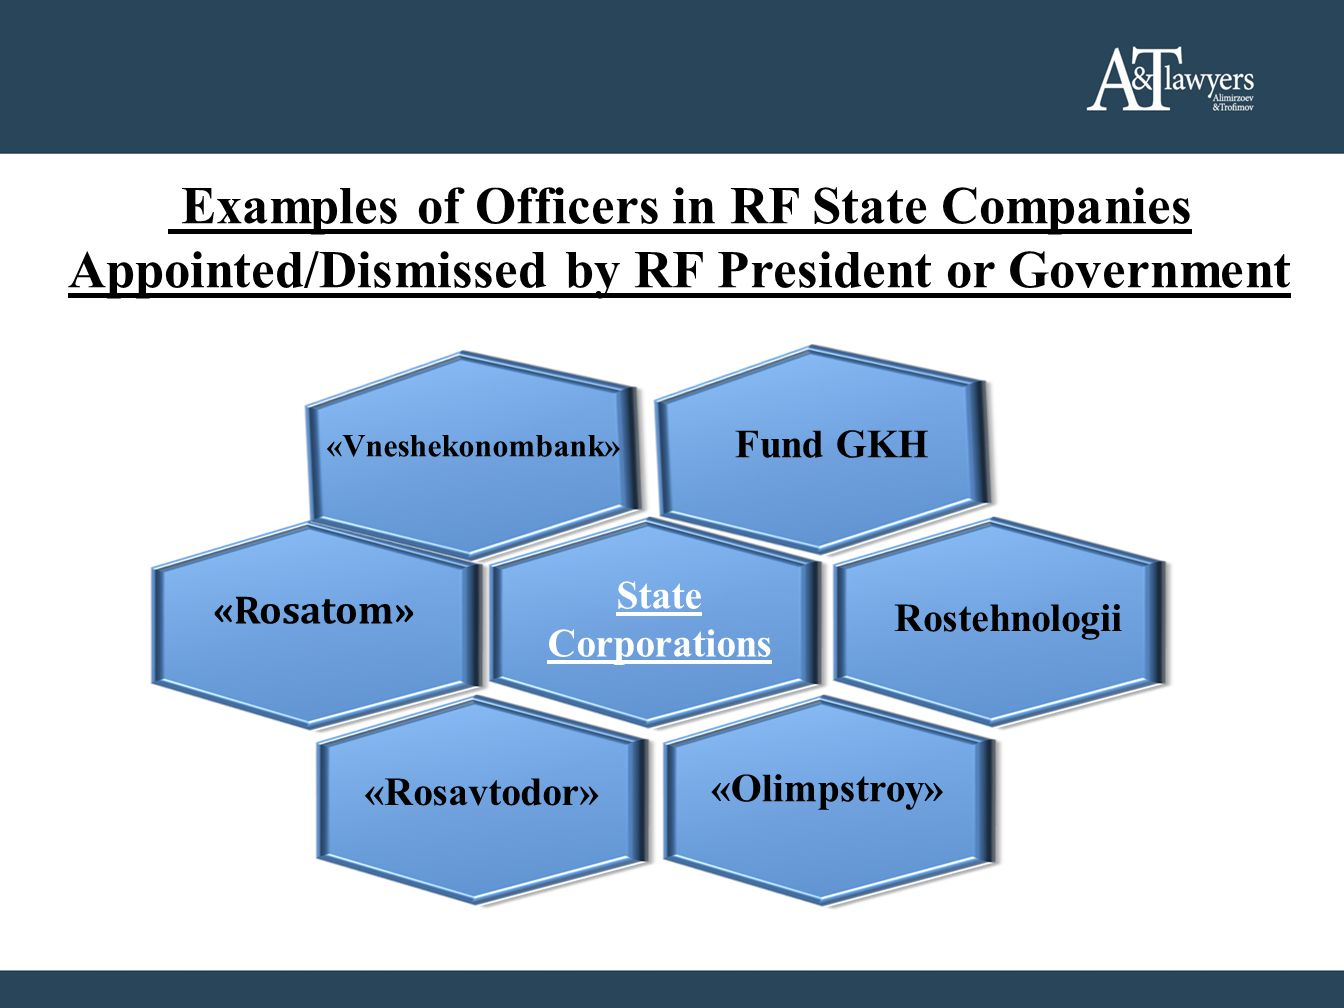 Examples of Officers in RF State Companies Appointed/Dismissed by RF President or Government «Vneshekonombank» «Rosatom» State Corporations Fund GKH «Rosavtodor» «Olimpstroy» Rostehnologii